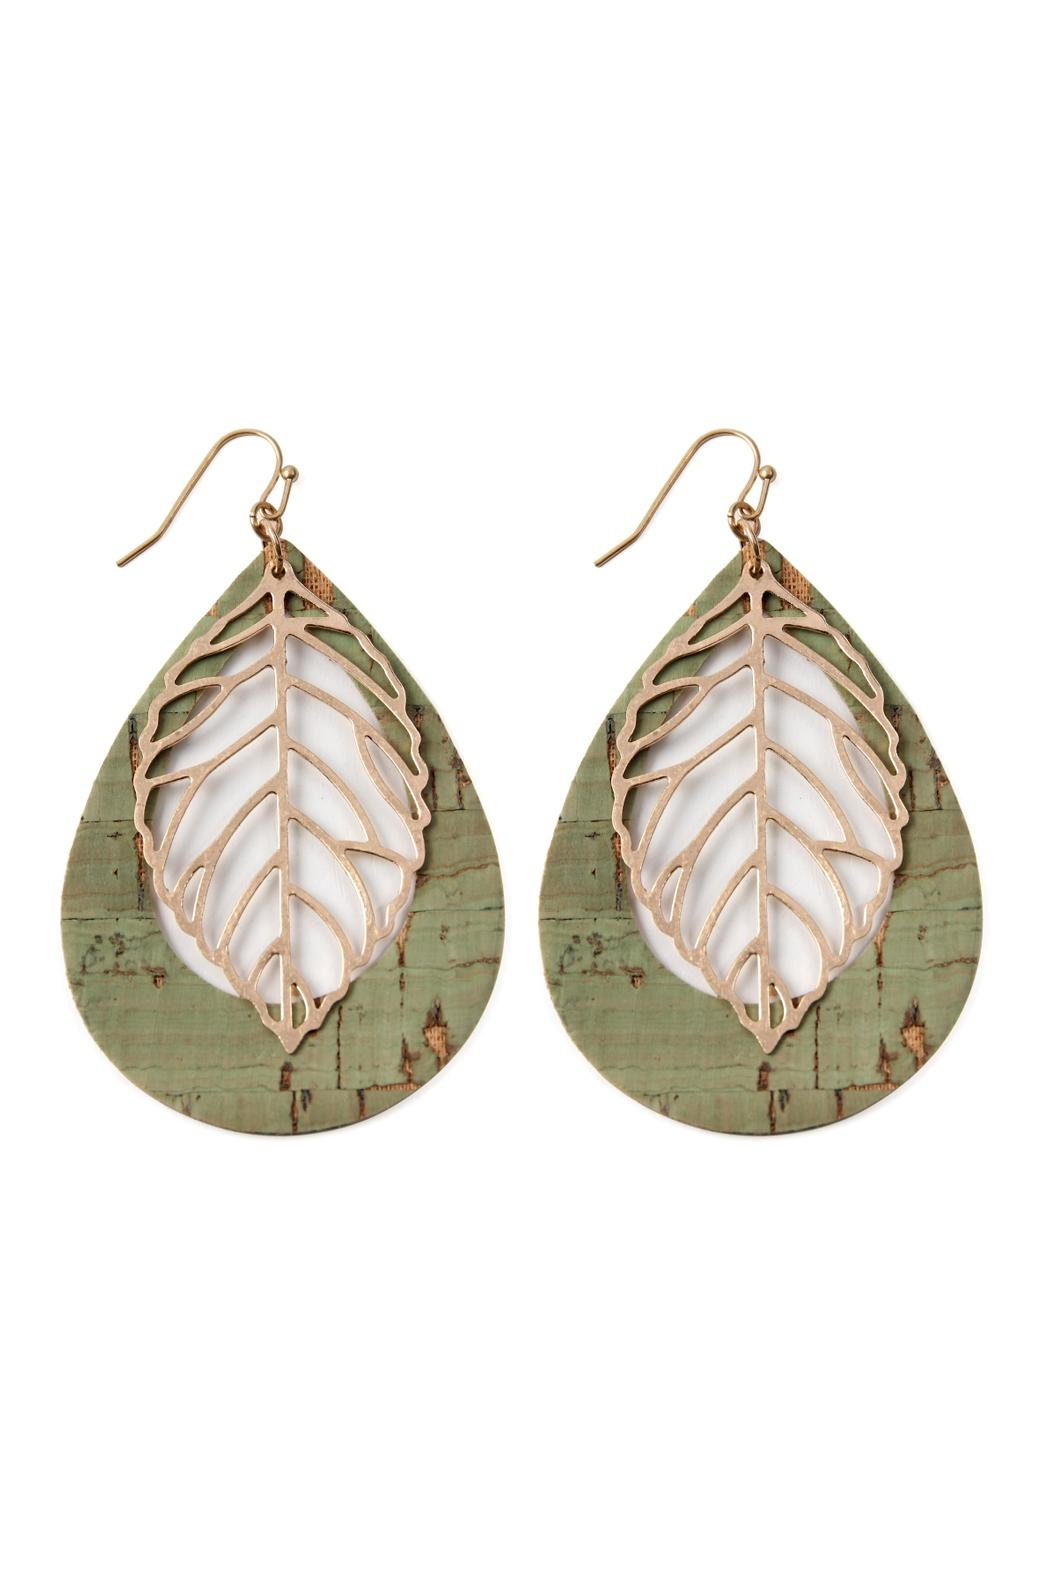 Riah Fashion Vintage Teardrop With Cast Metal Leaf Earrings - Main Image